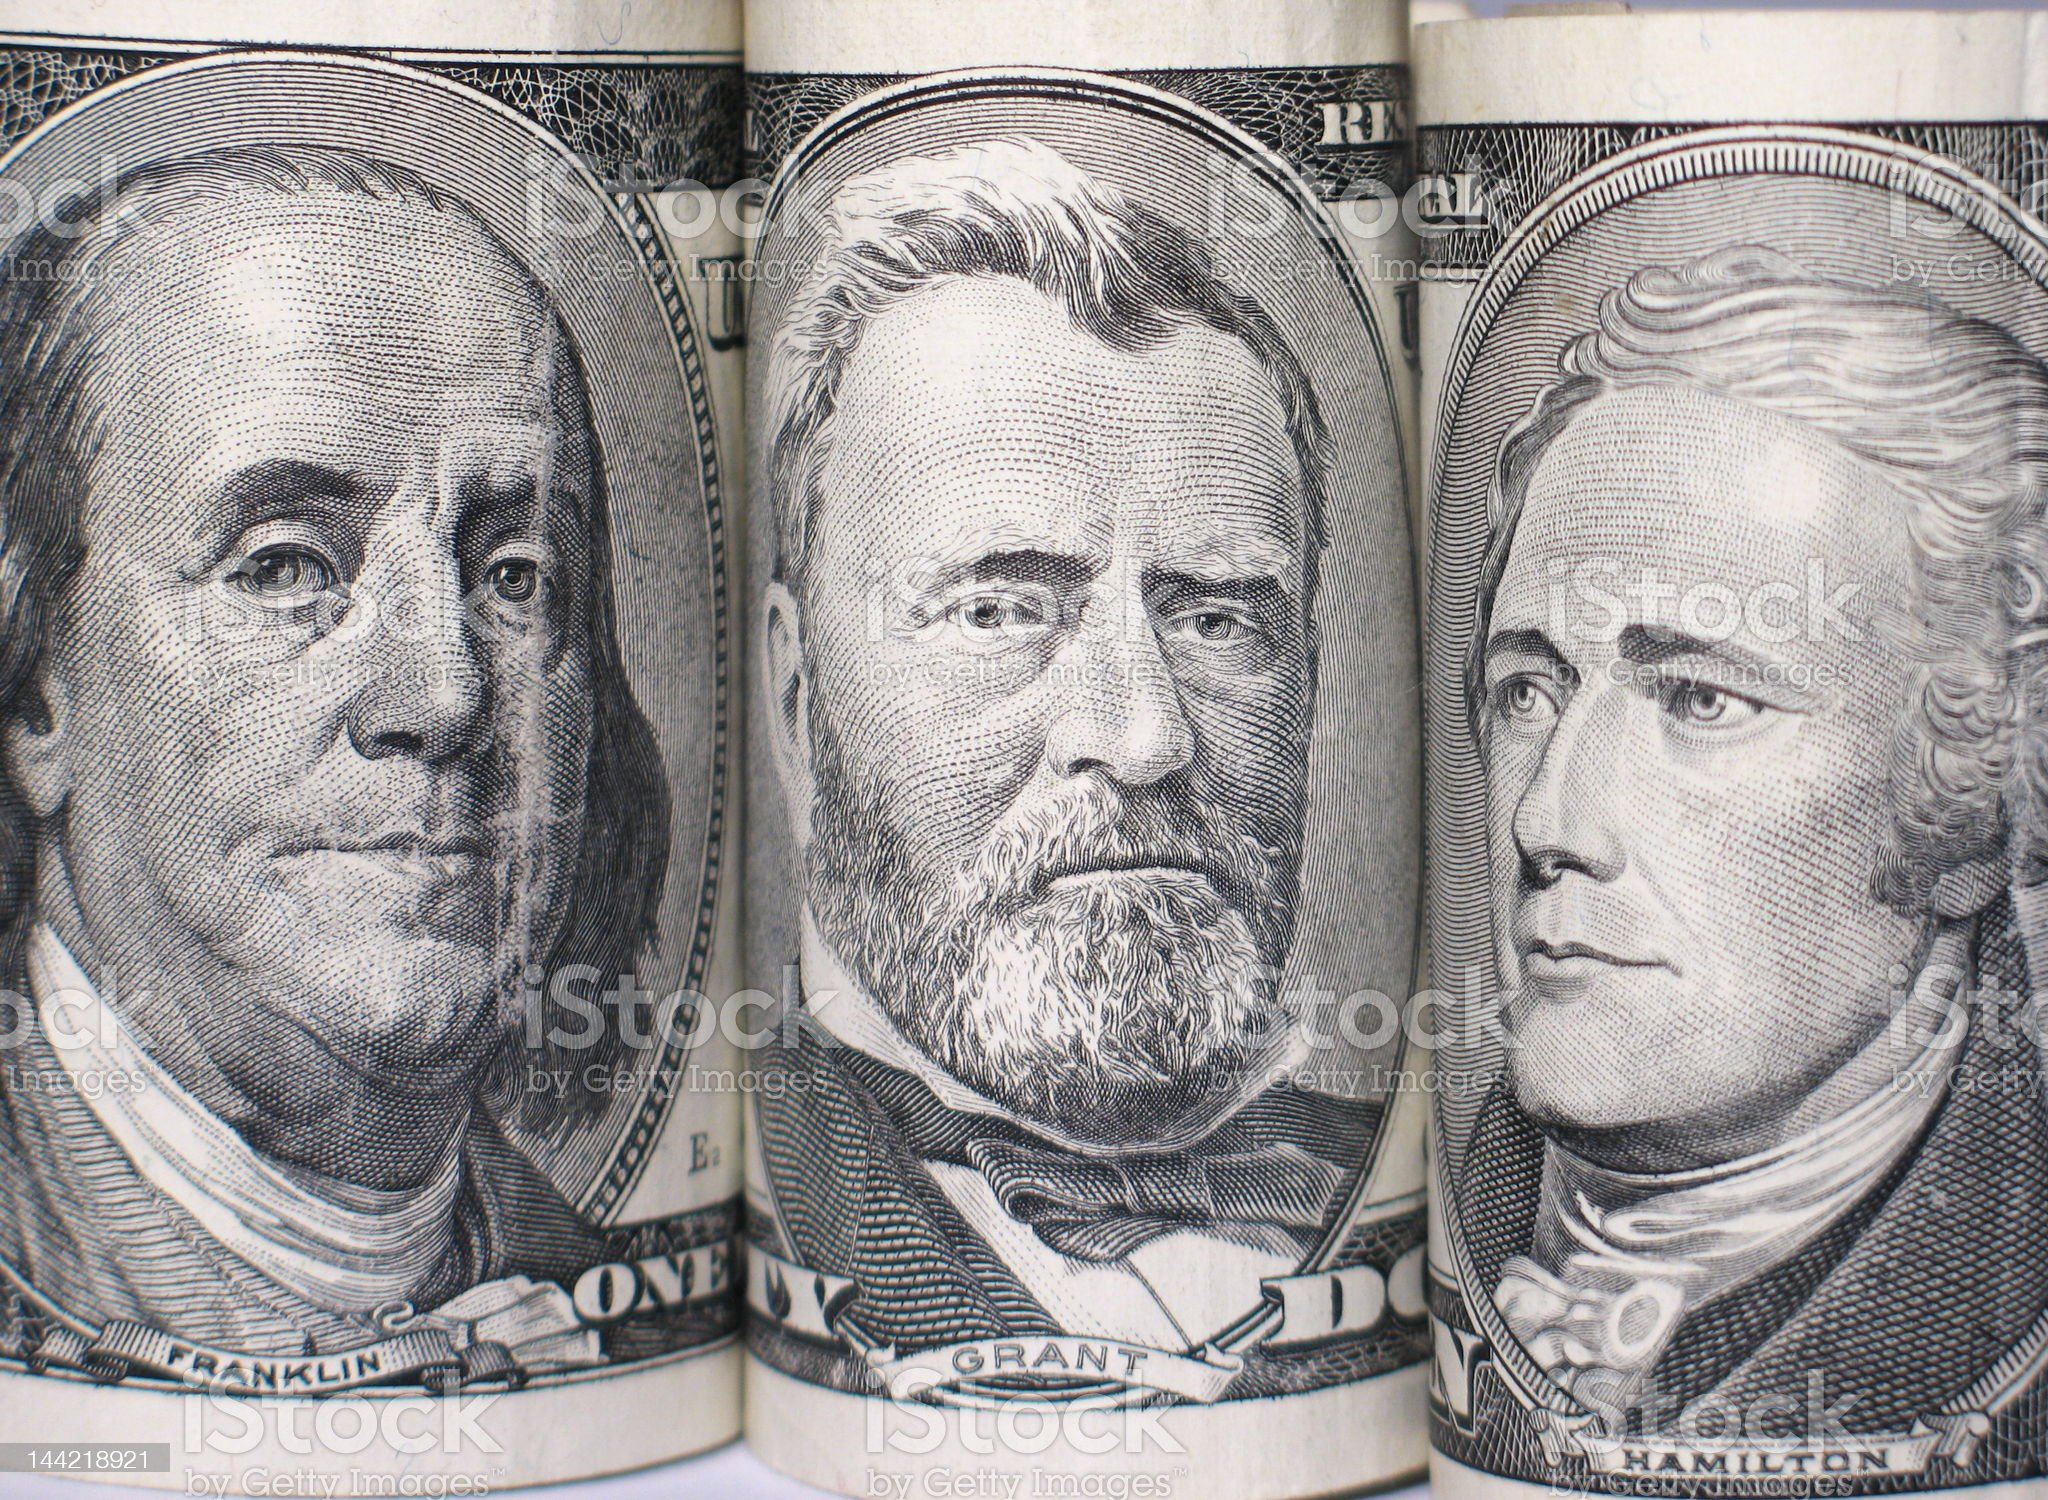 Triplet of banknote portraits royalty-free stock photo